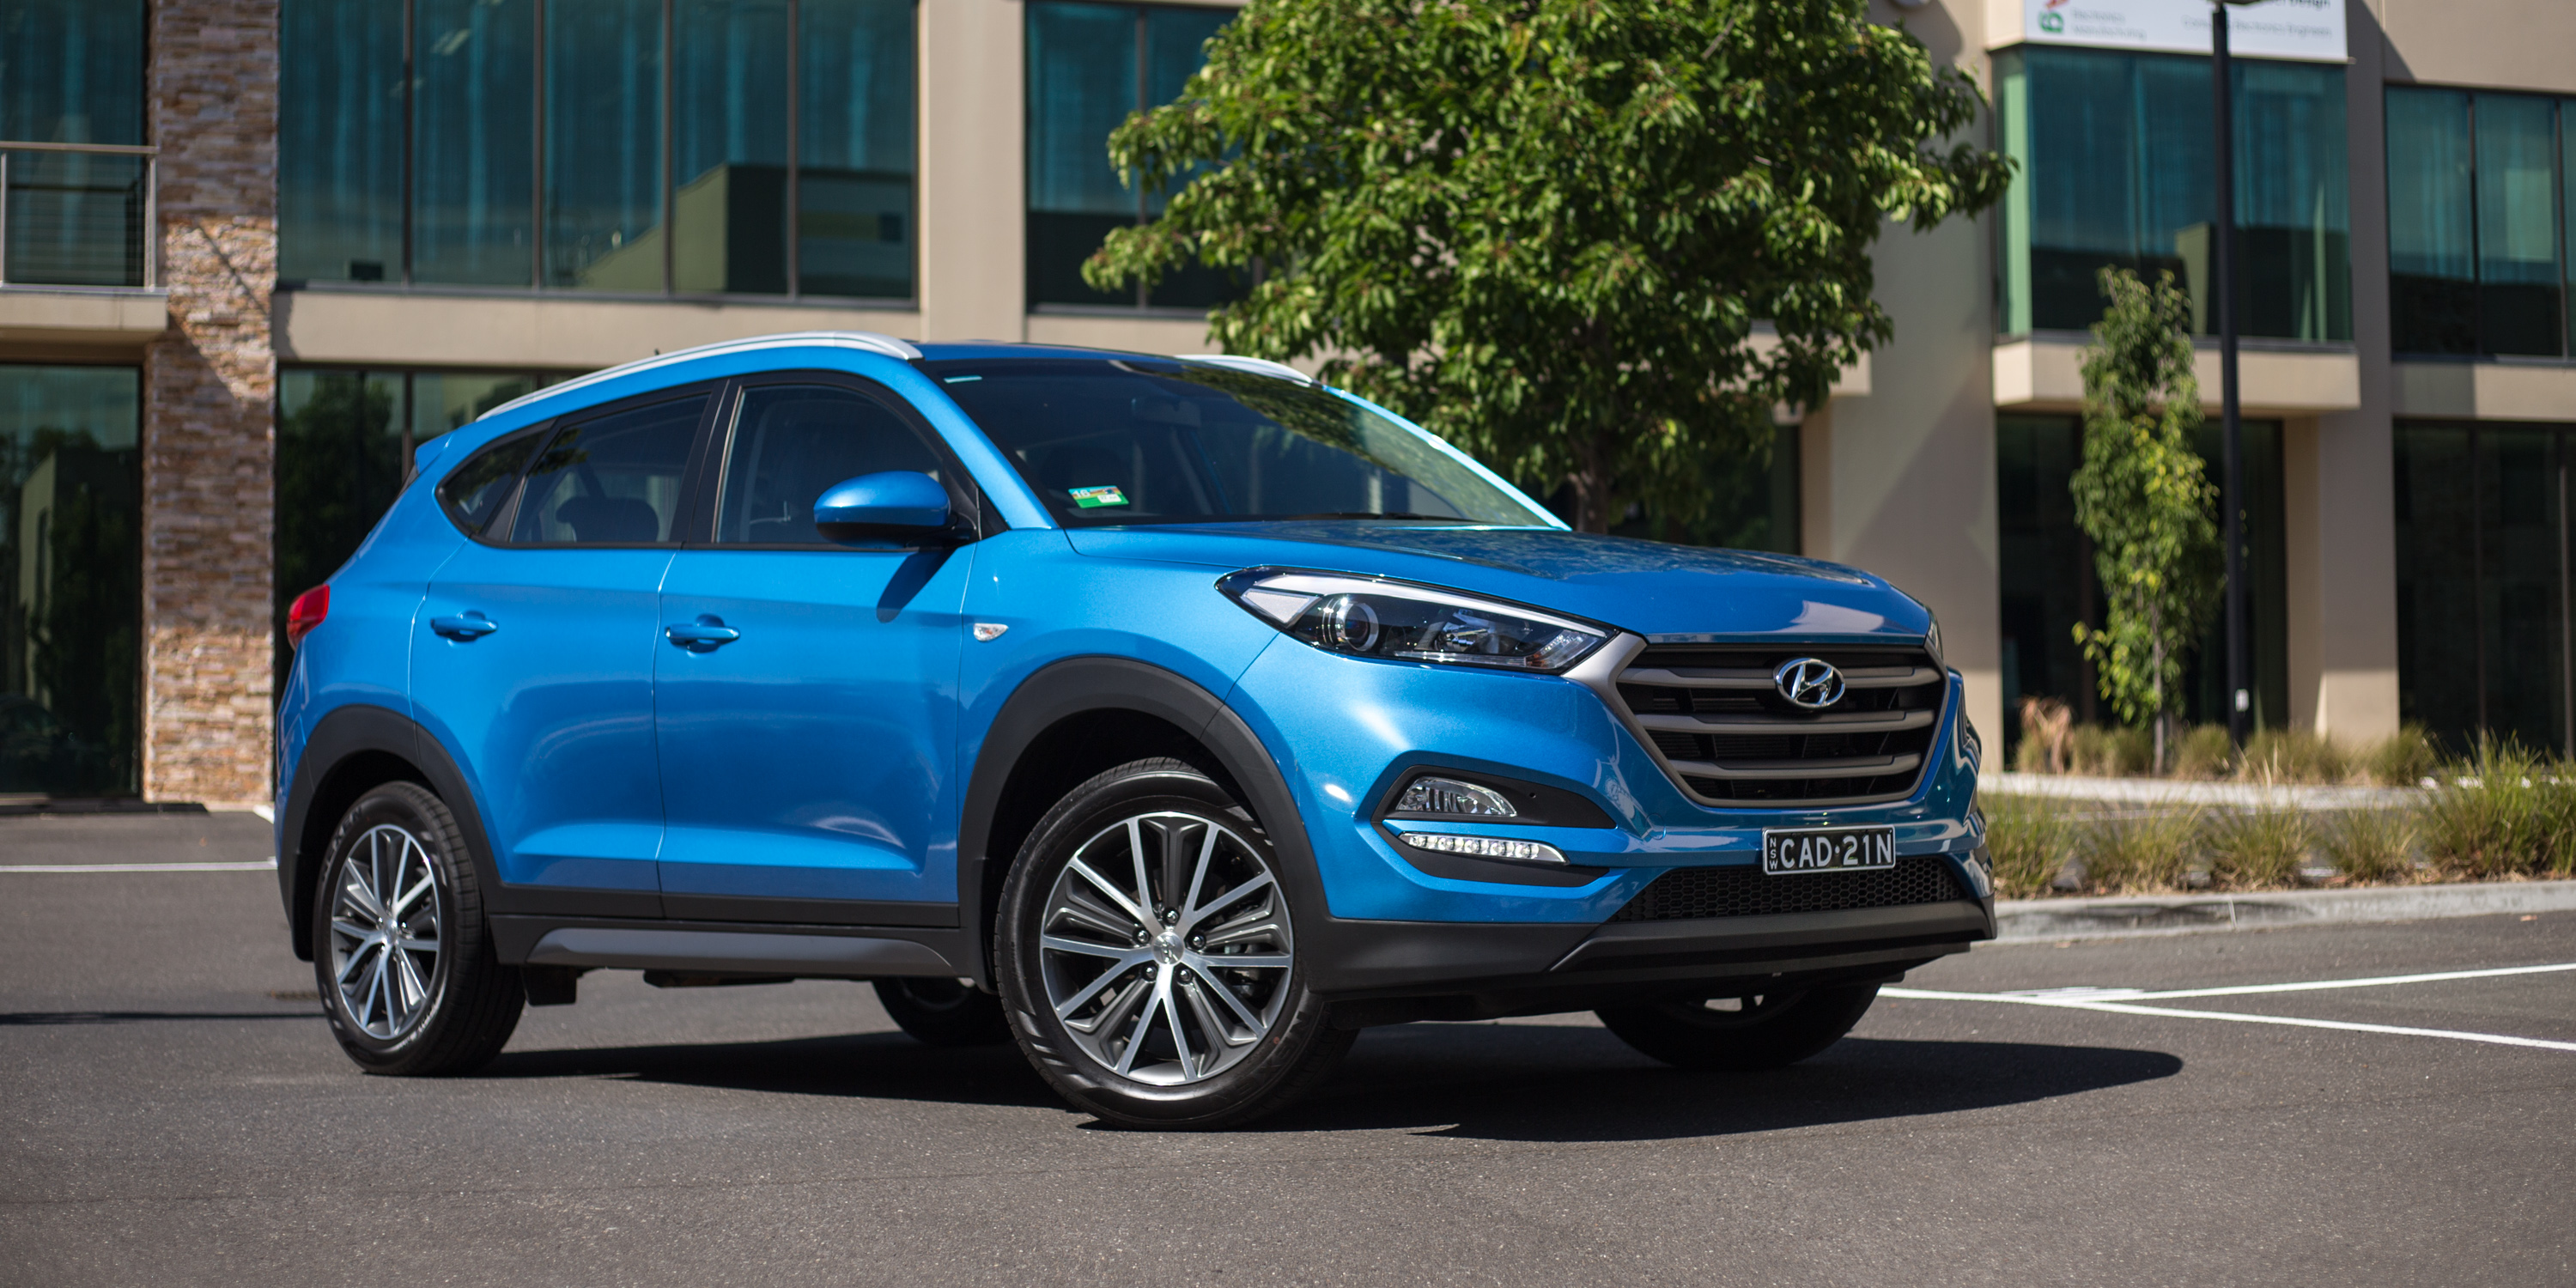 2016 Hyundai Tucson Active X Review: Long-term report one ...